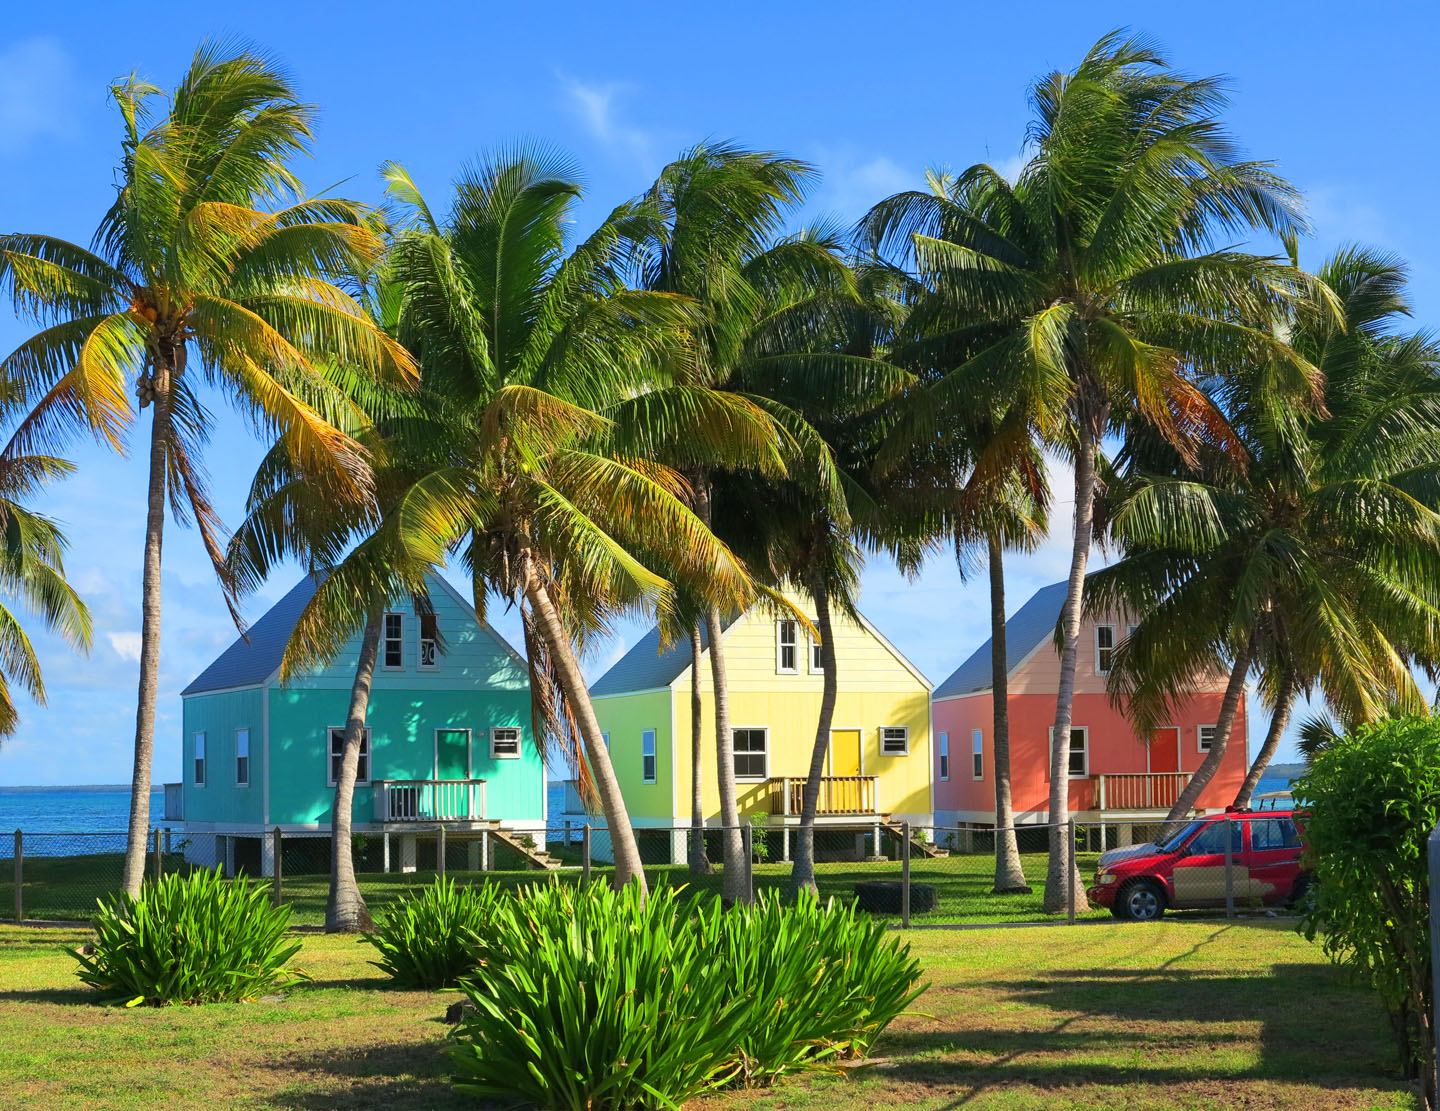 Colourful cottages on Green Turtle Cay, Bahamas